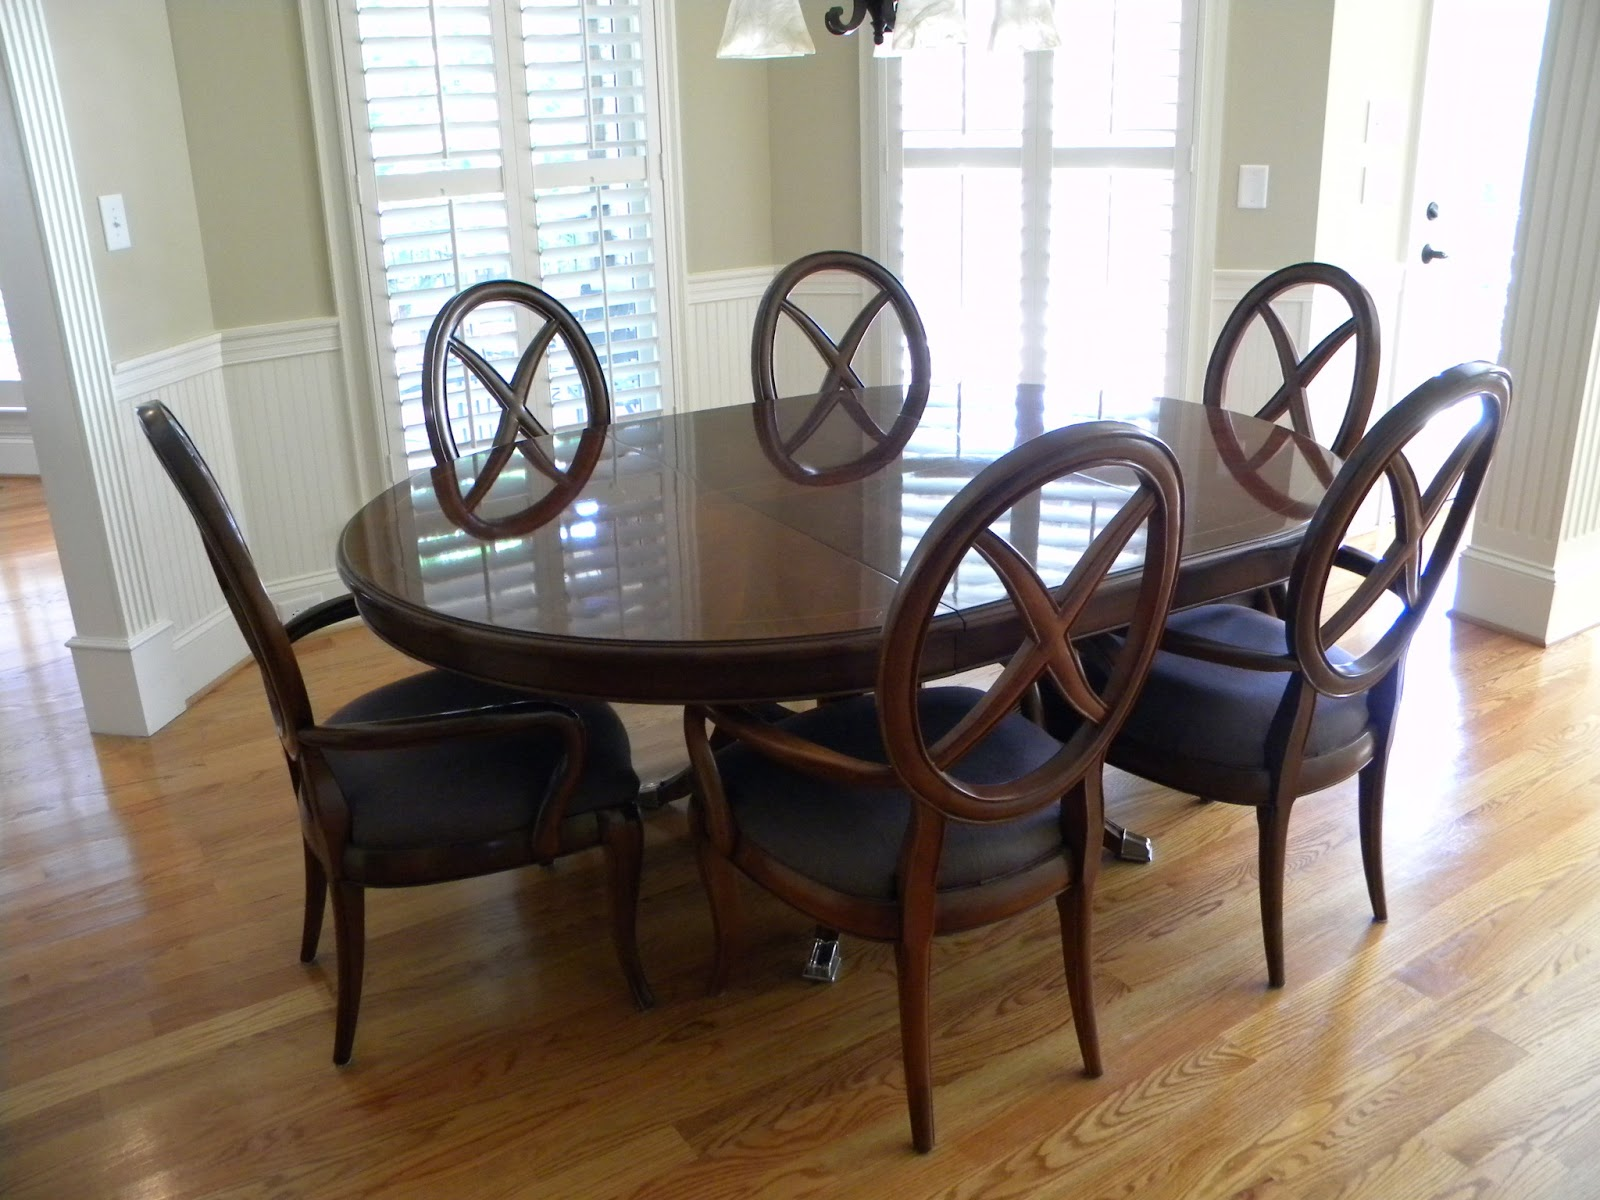 Nice  pristine condition You can get each piece separate to plete your set or by the whole set for We even have dining room table and arm chairs